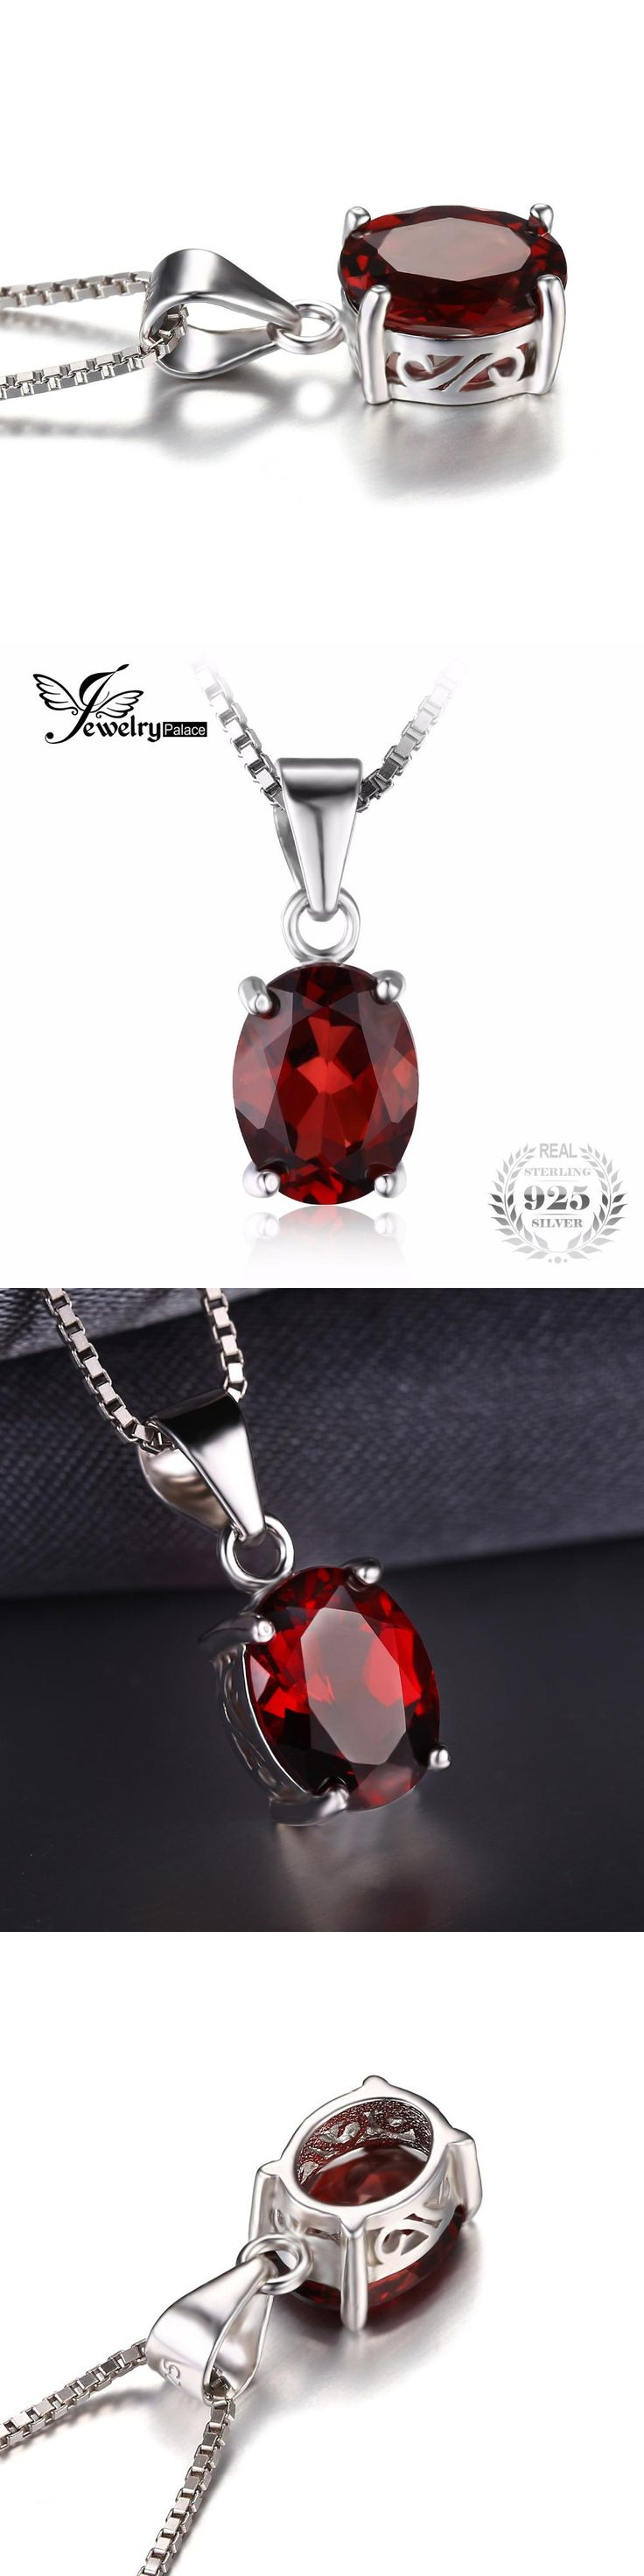 Charms 925 Sterling Silver Garnet Pendant Necklace fit Chain Necklace 18 Inch Genuine 925 Silver Natural stone Pendant For Women